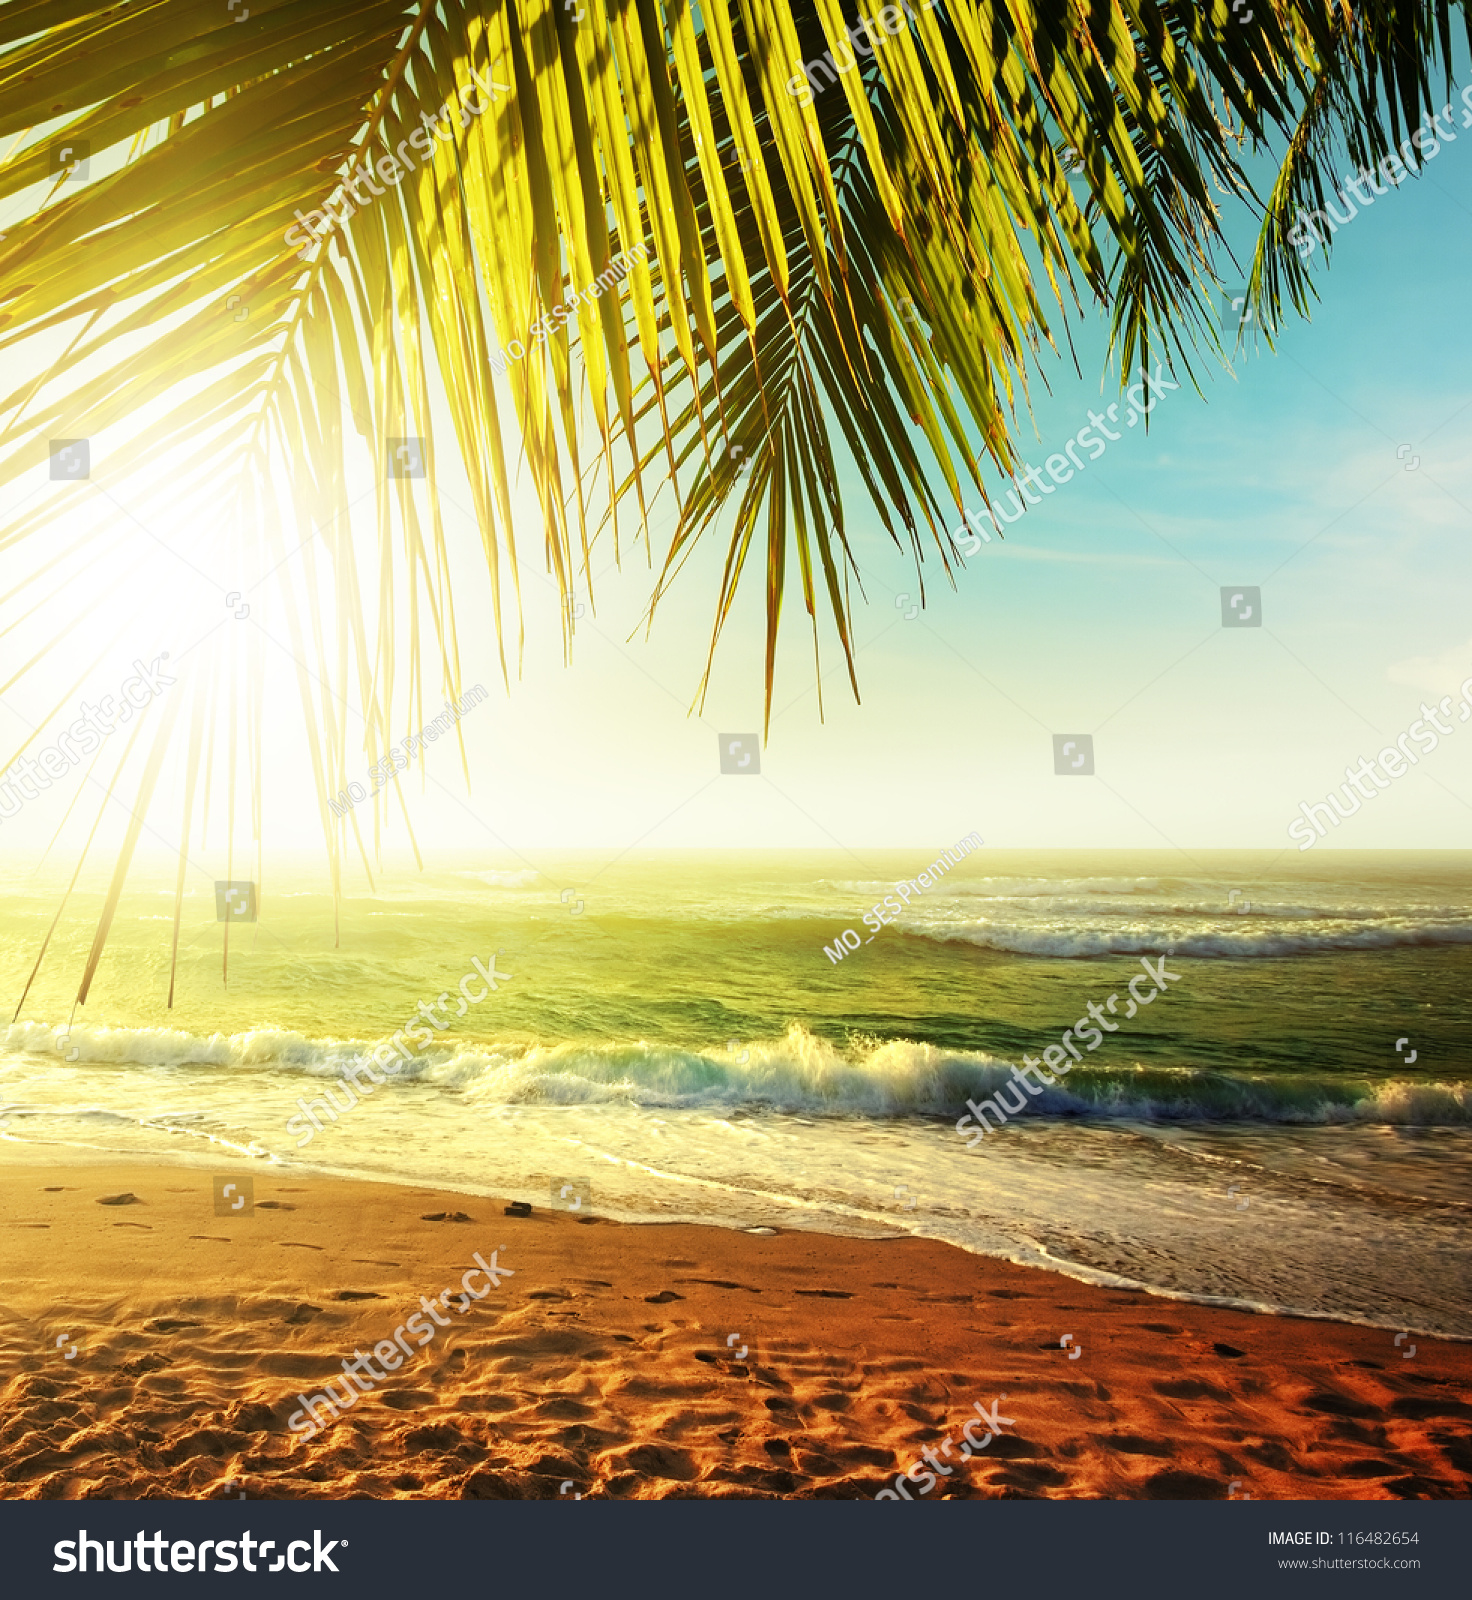 Sunset Over The Tropical Beach. Hdr Processed. Stock Photo